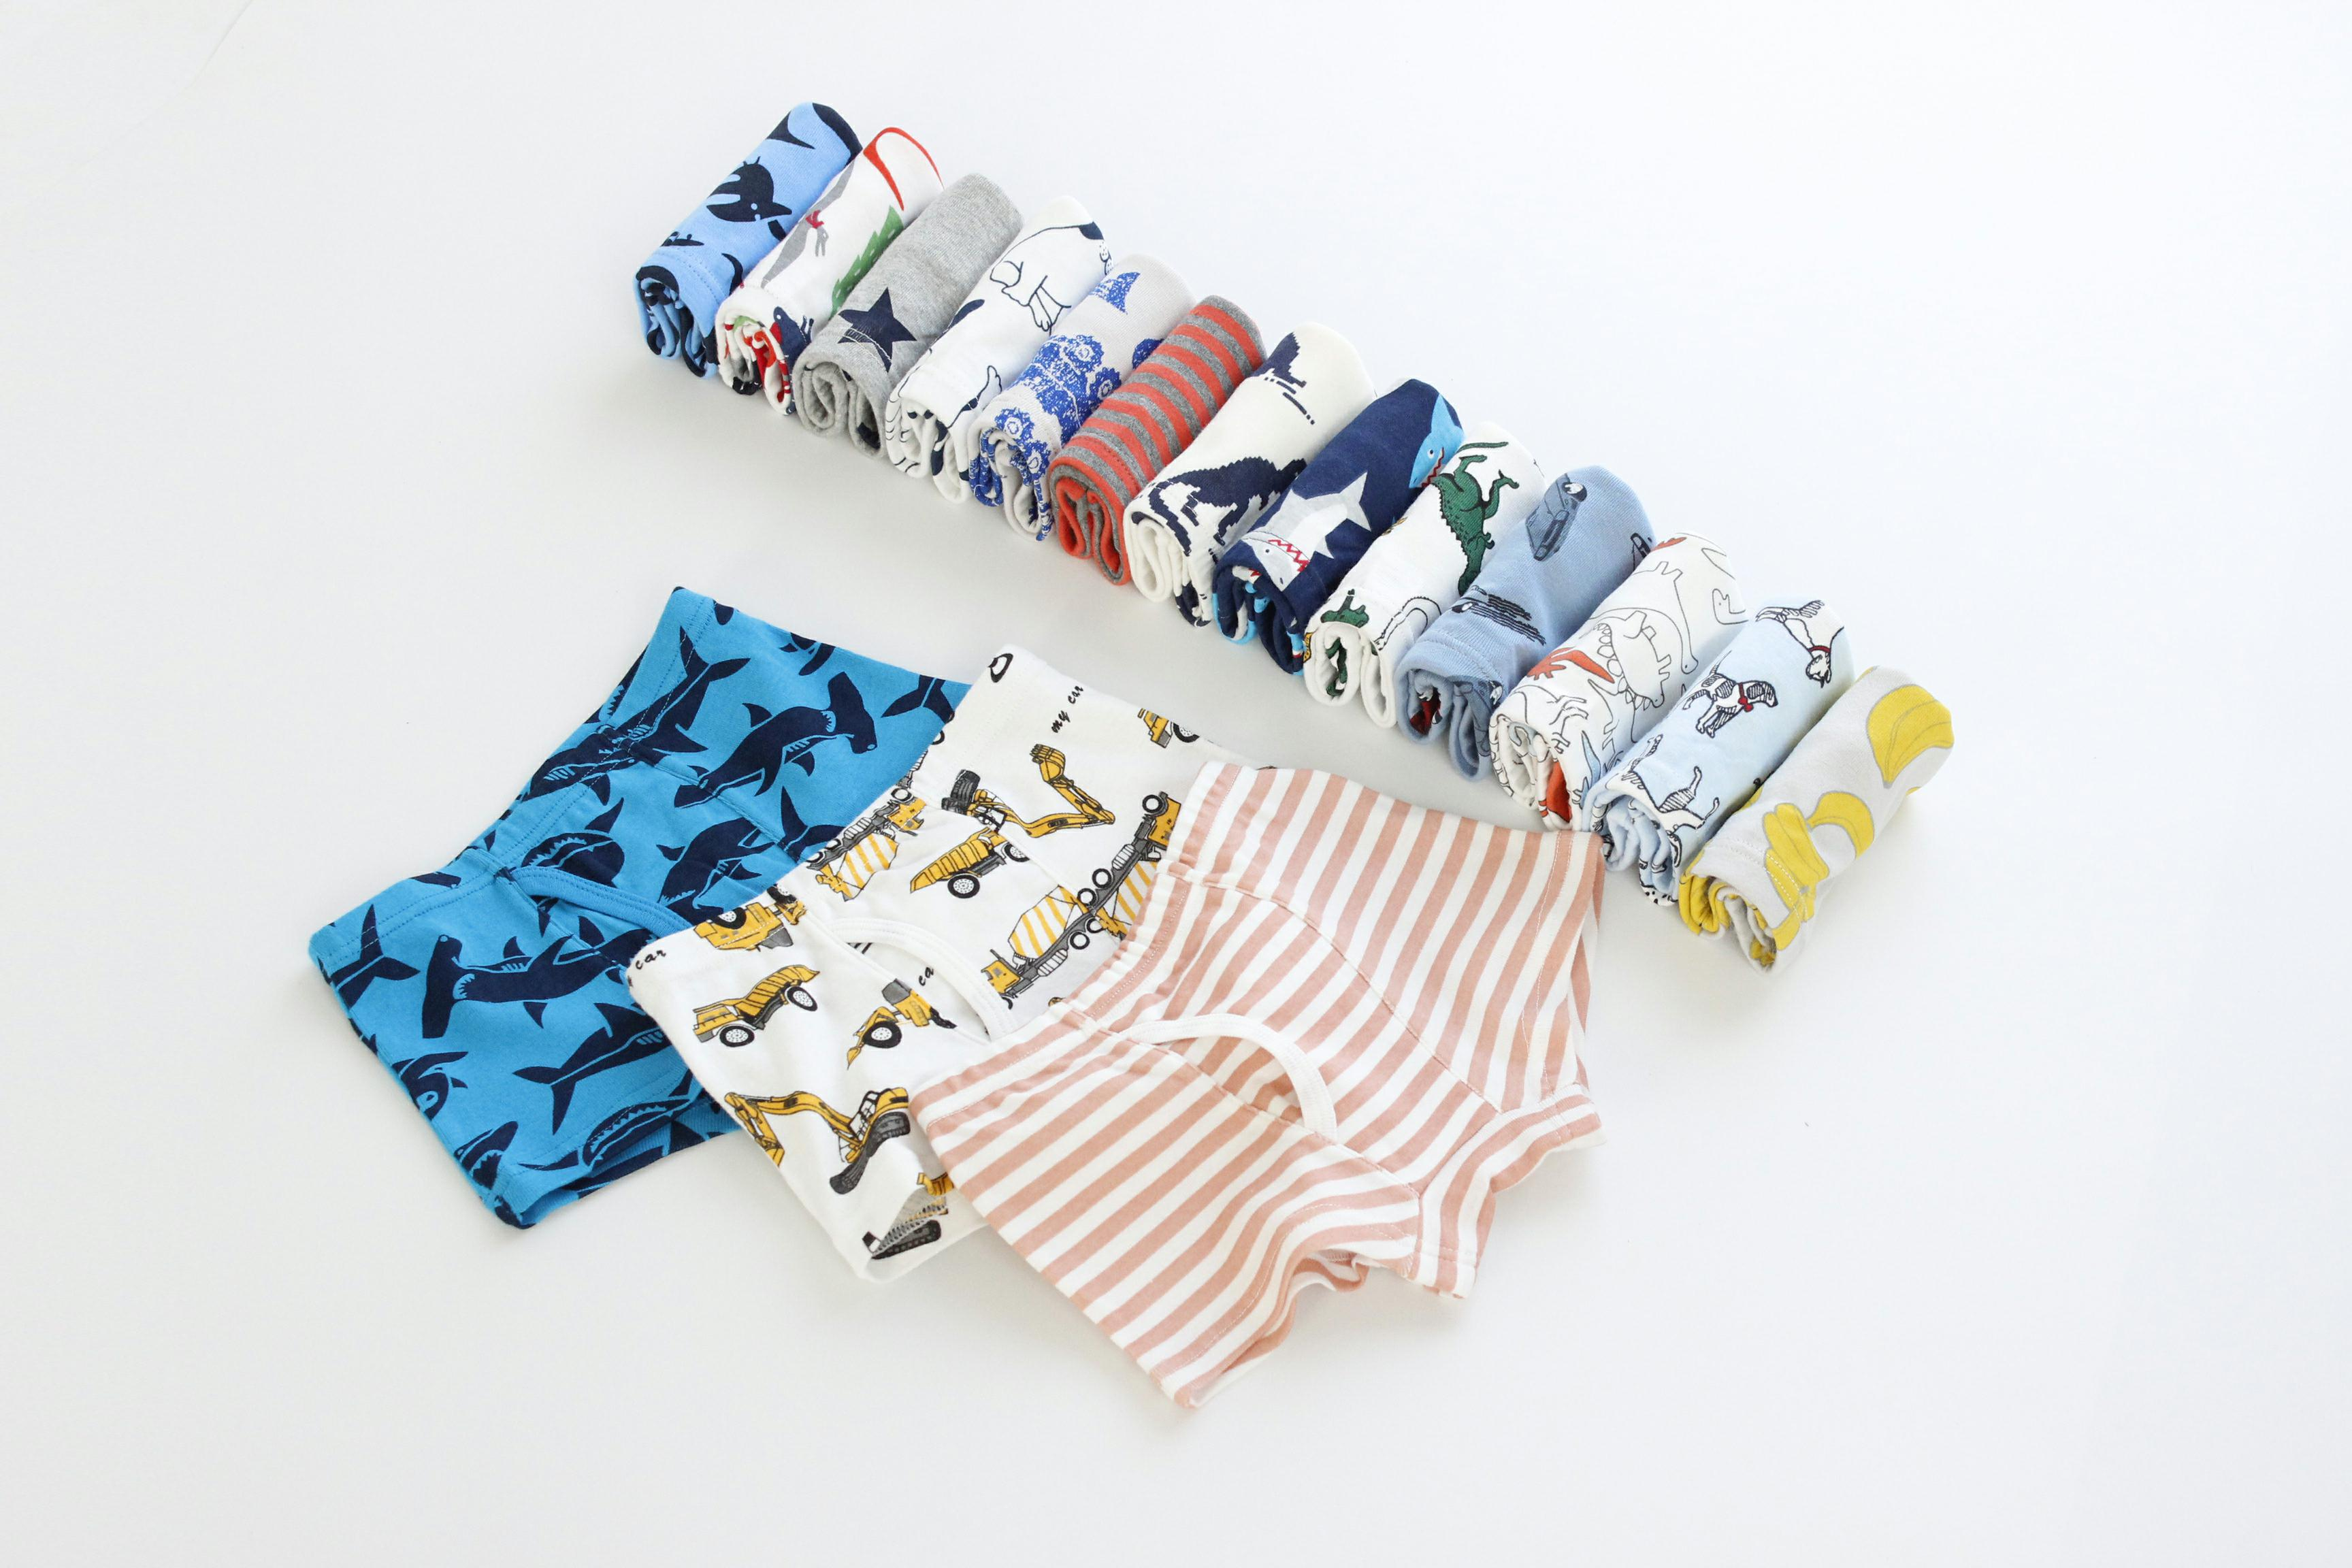 underwear for teenage boys wearing panties boys underwear wholesale dropship 3pcs/bag short pants underwear kids